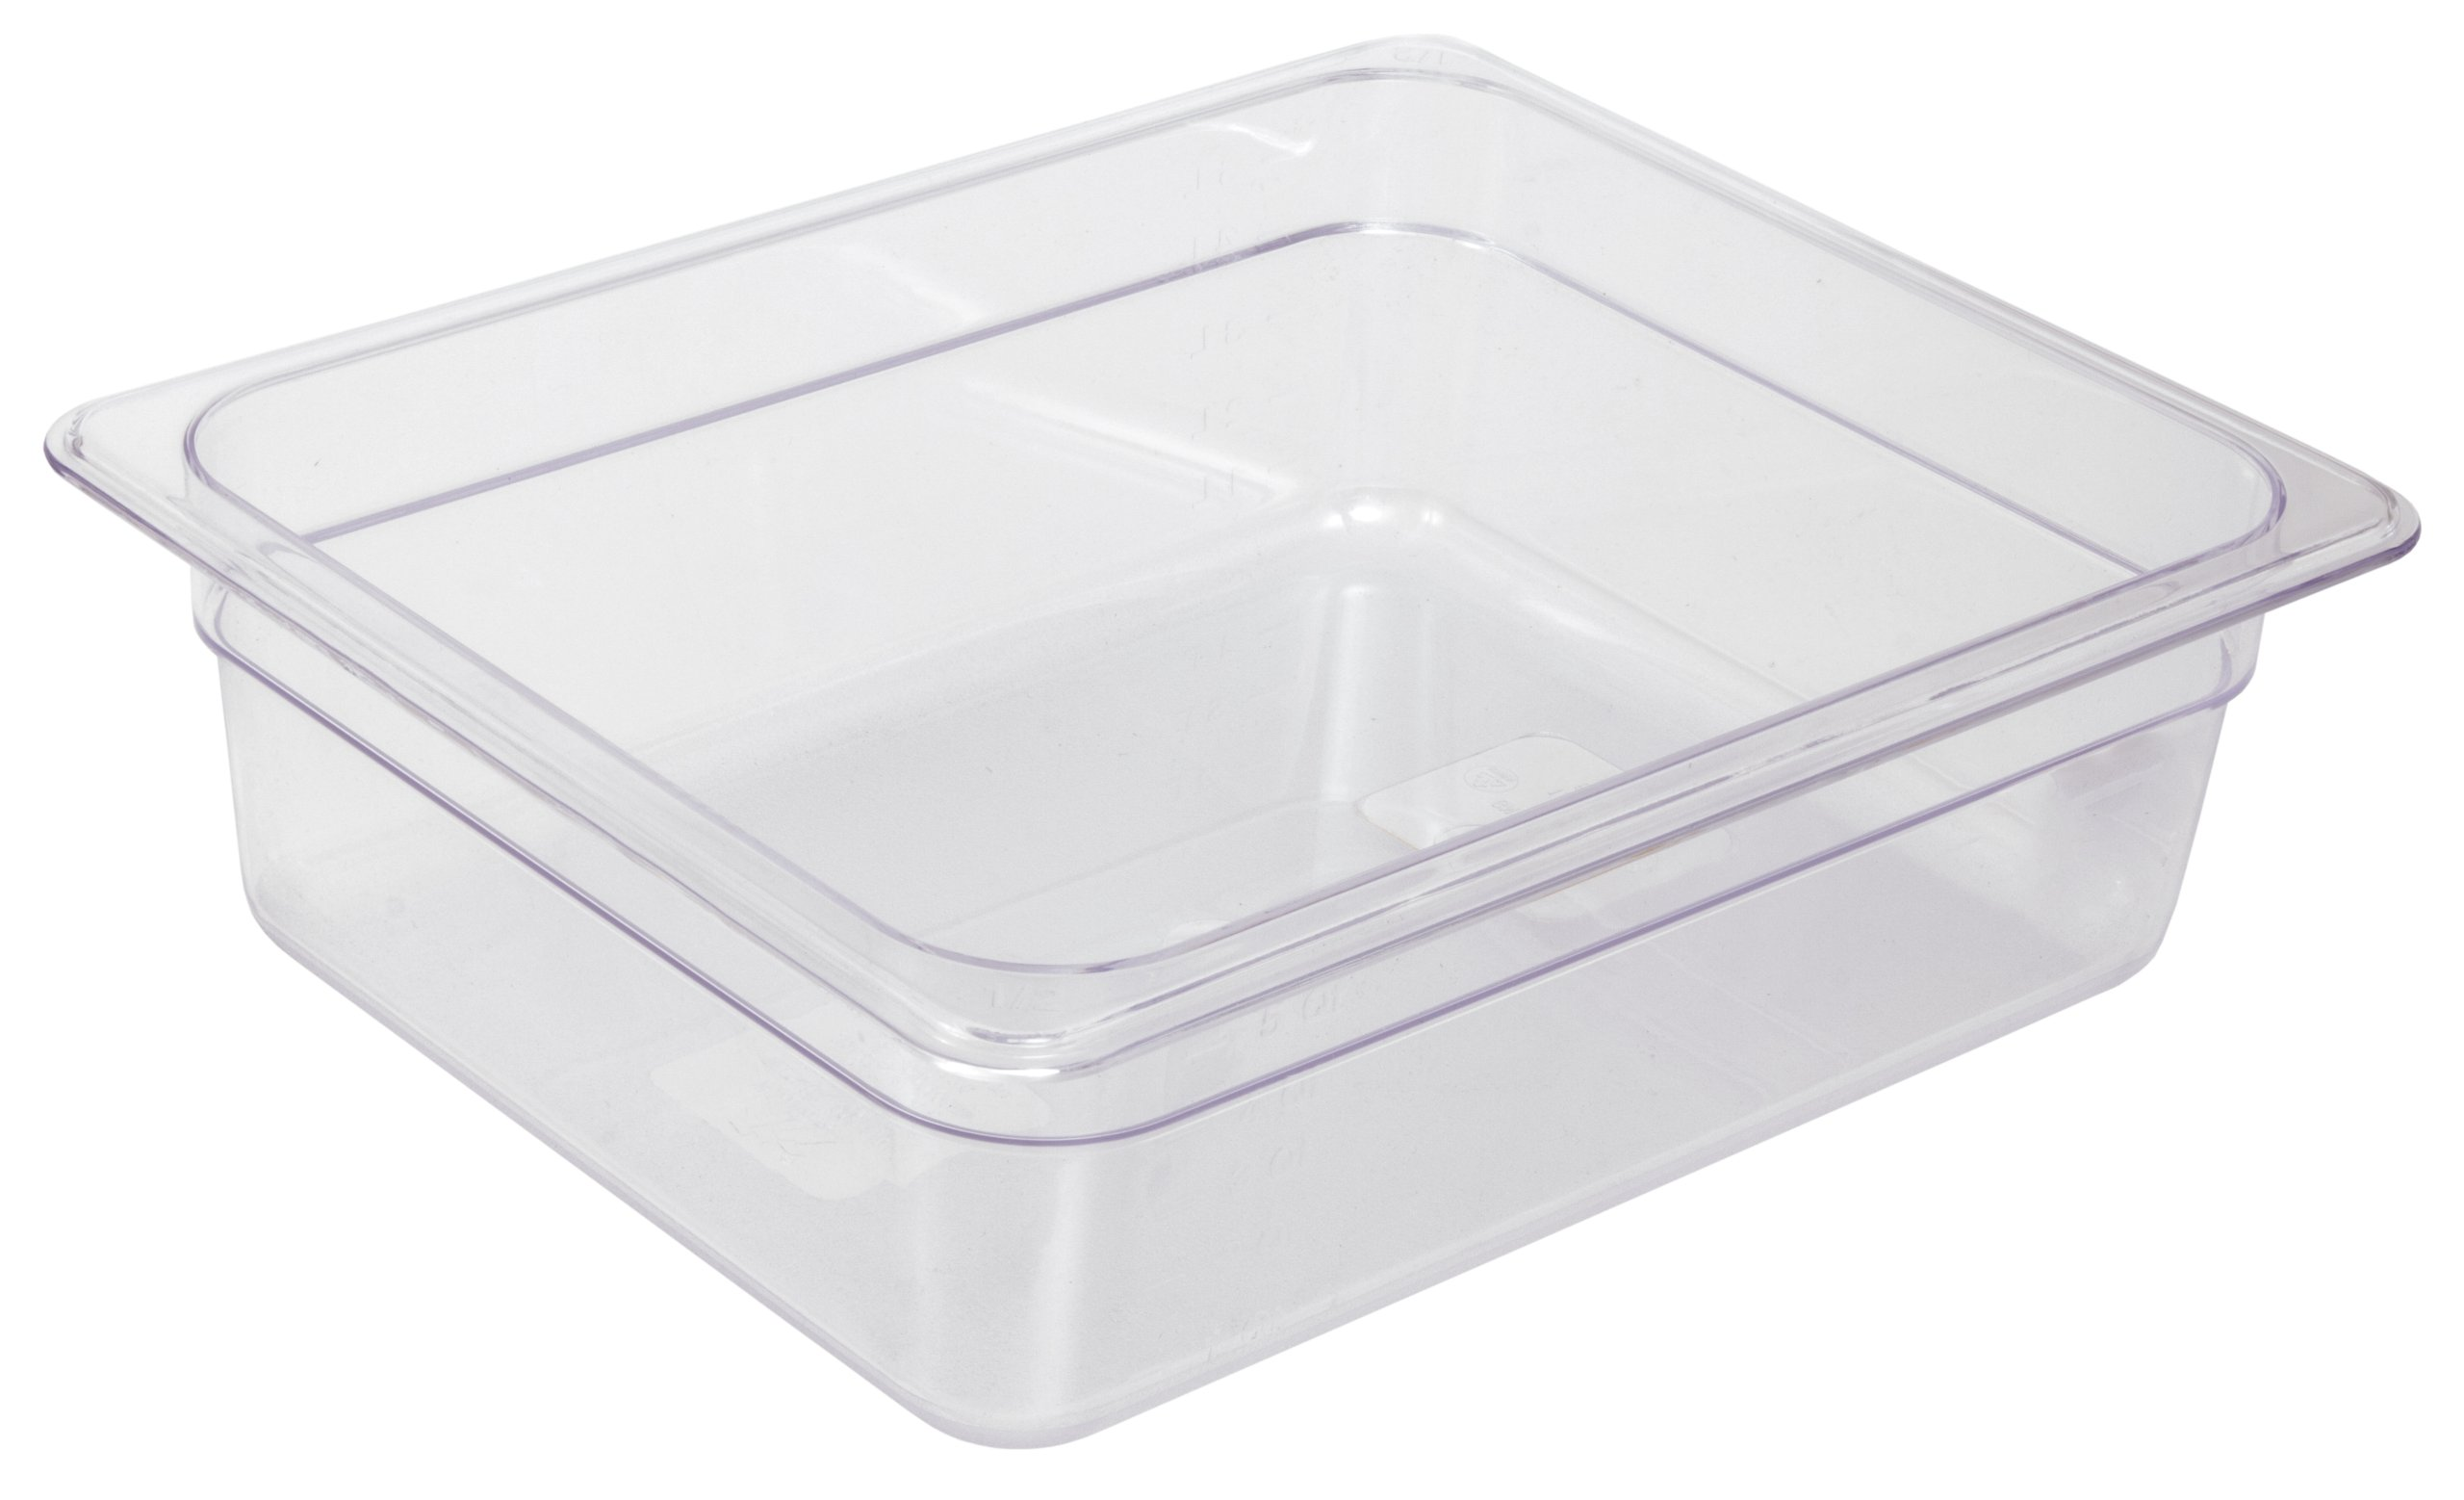 Crestware Commercial Grade, FP24, Polycarbonate Food Pan Half Size 4'', Set of 2